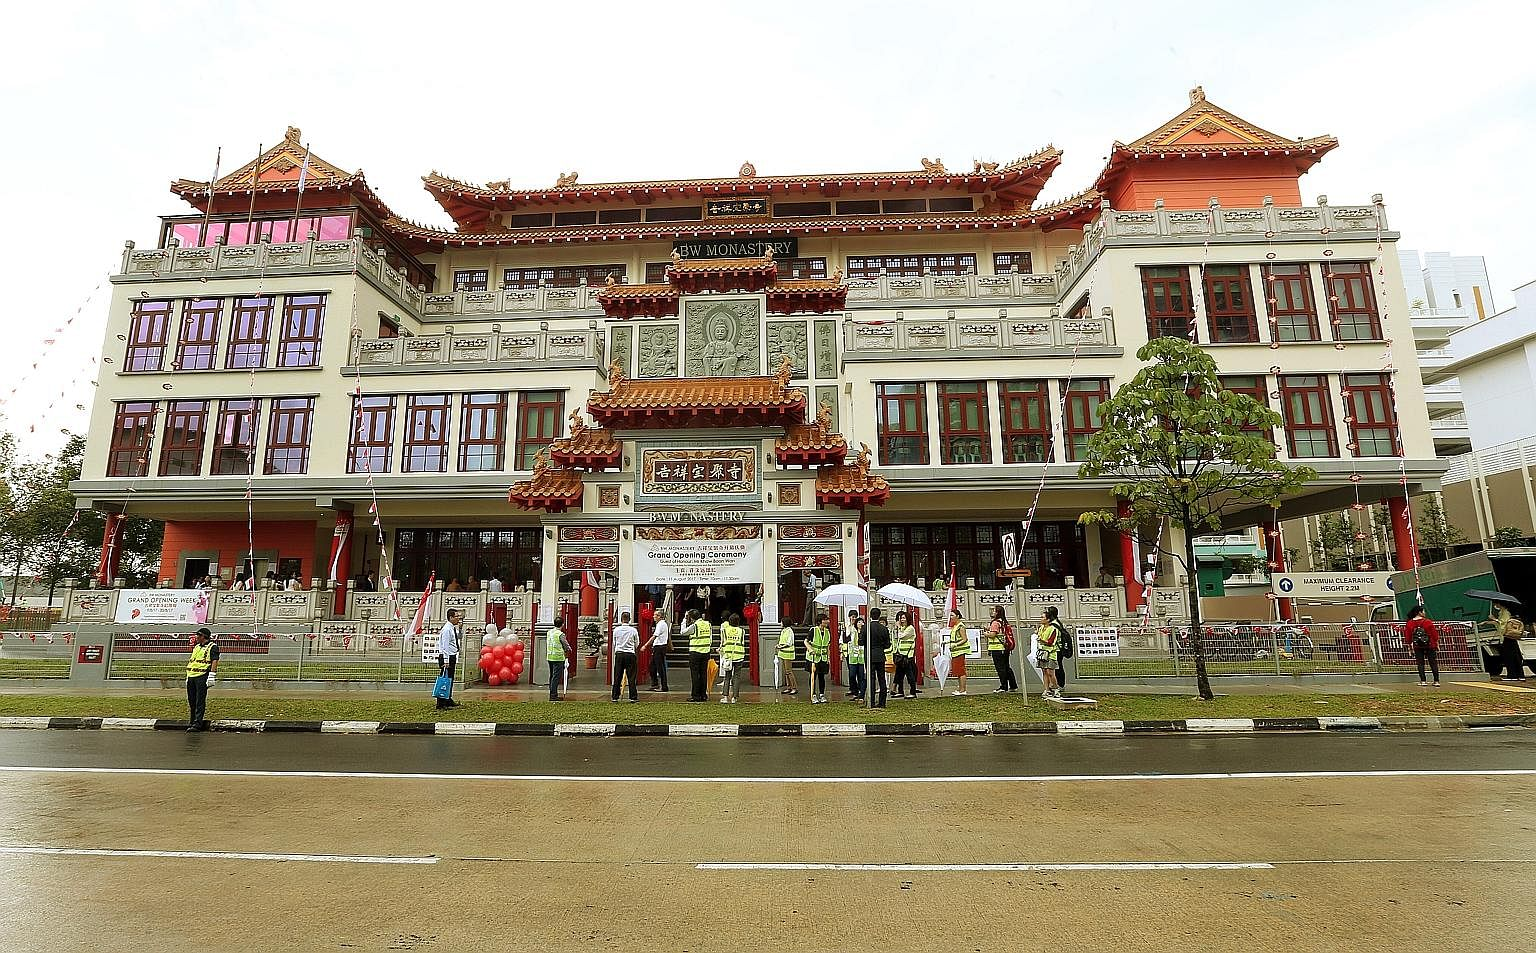 Growing membership in a Buddhist organisation has seen it look north for more real estate. Yesterday, the 15-year-old BW Monastery officially opened its new headquarters in Woodlands. The four-storey complex is the size of about 30 five-room HDB flat